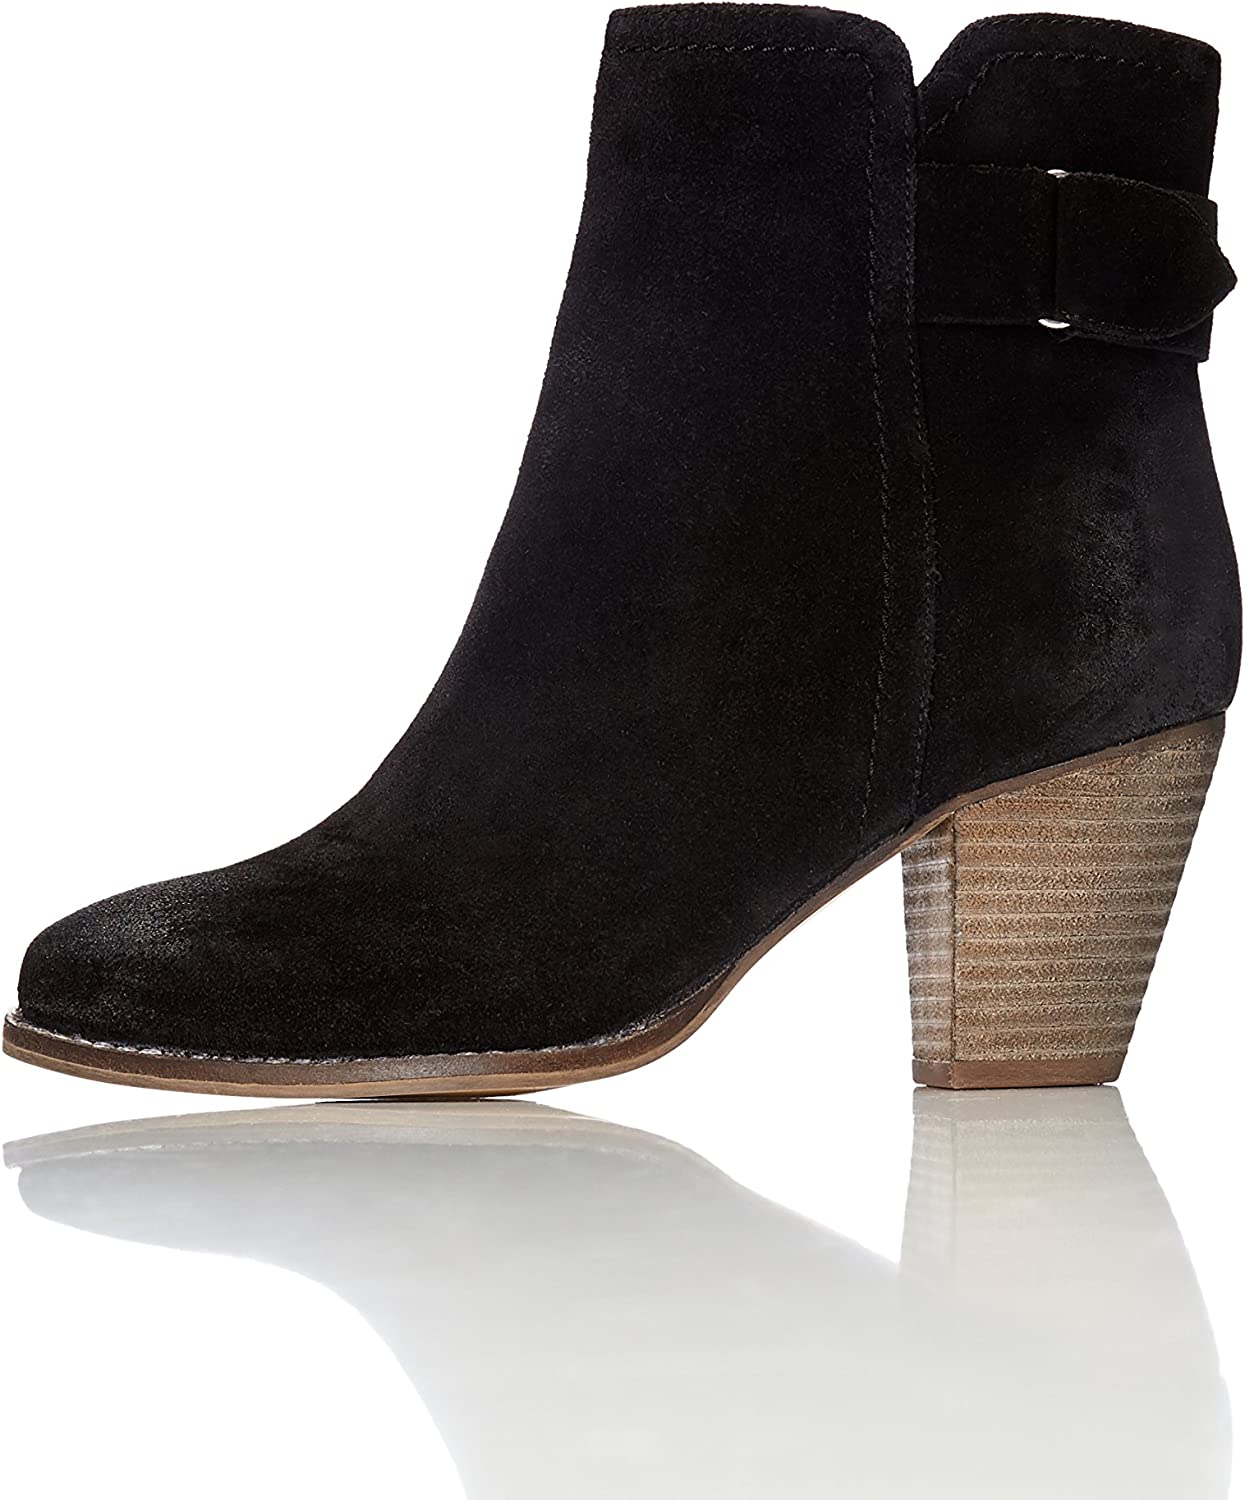 find. #_Maud - Botines Mujer